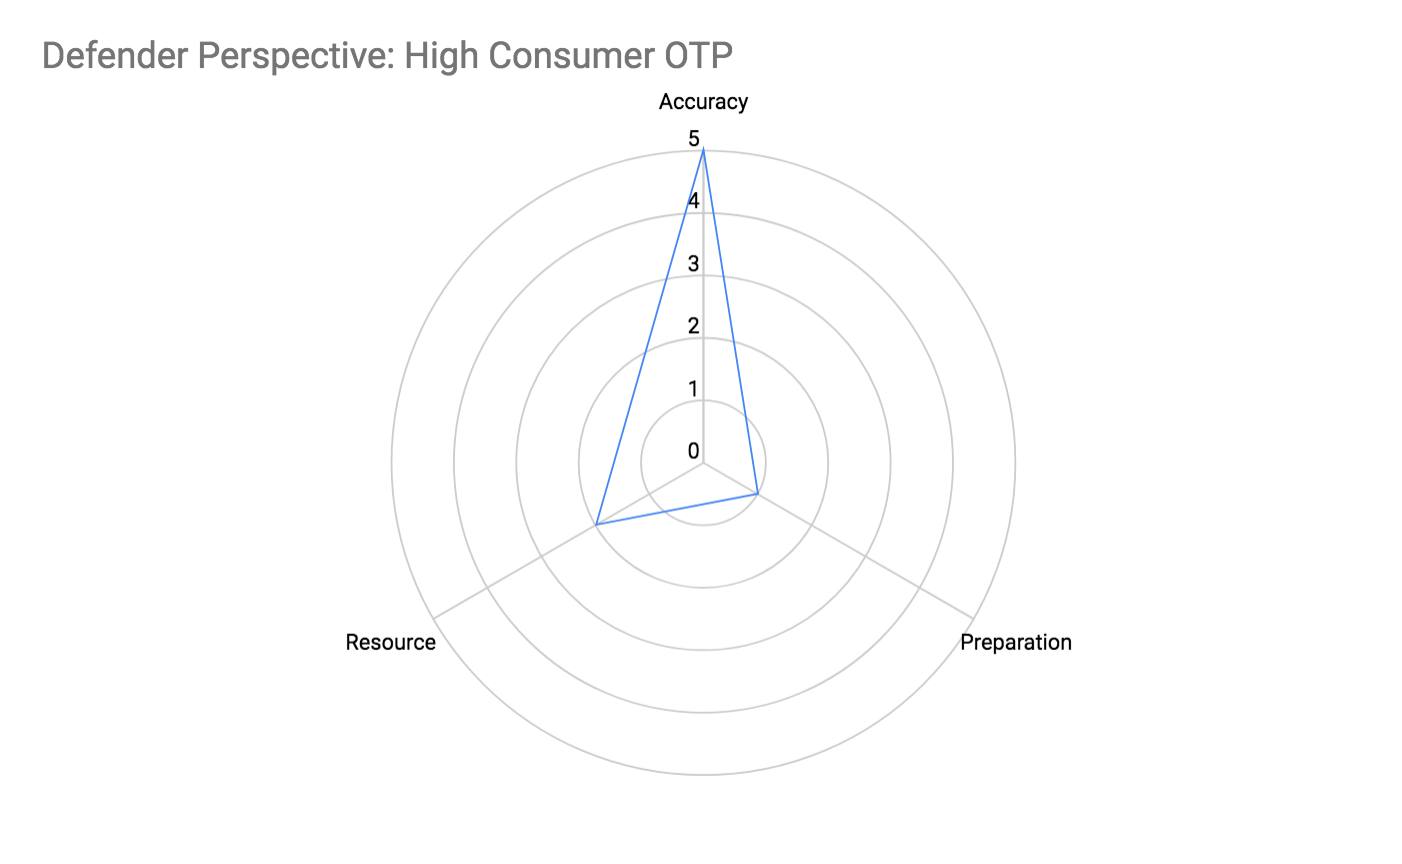 Defender Perspective: High Consumer OTP Attributes